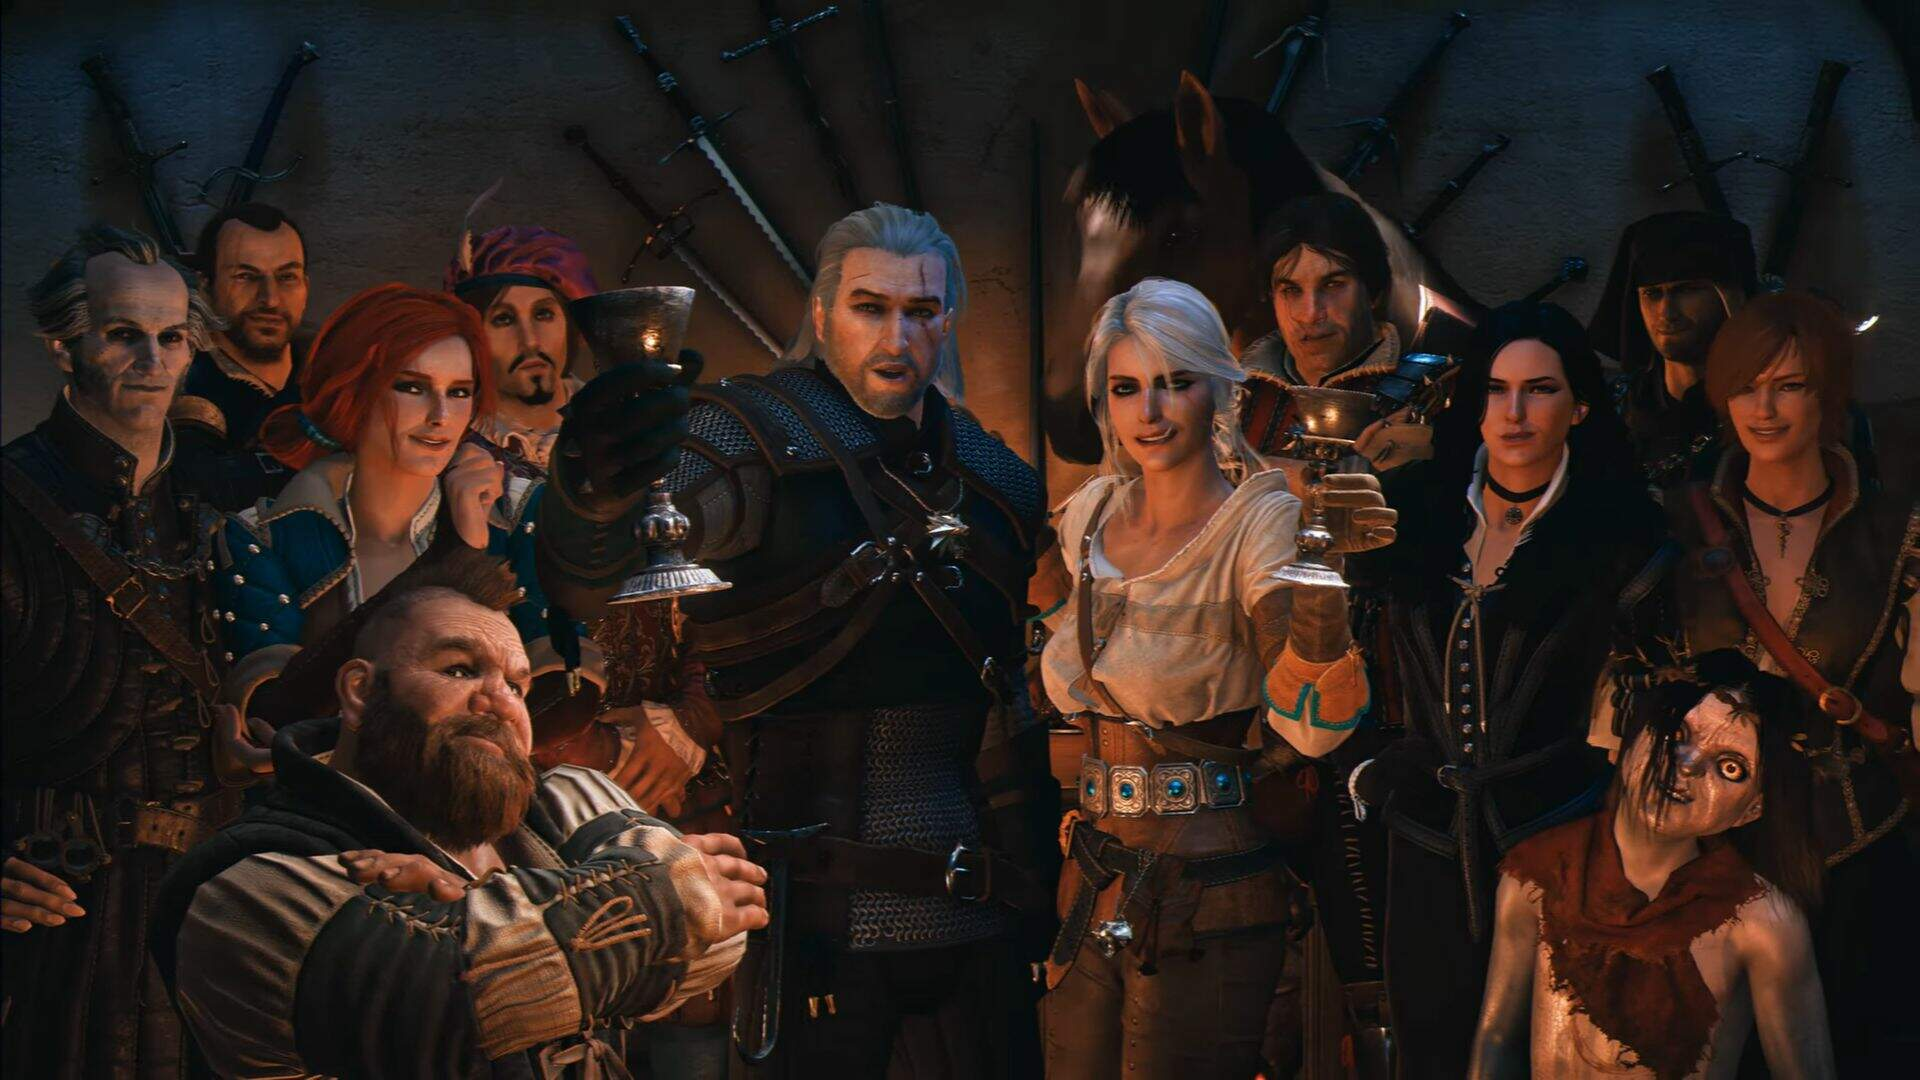 The Witcher Series Blows Past 50 Million Sold Following Hugely Successful 2019